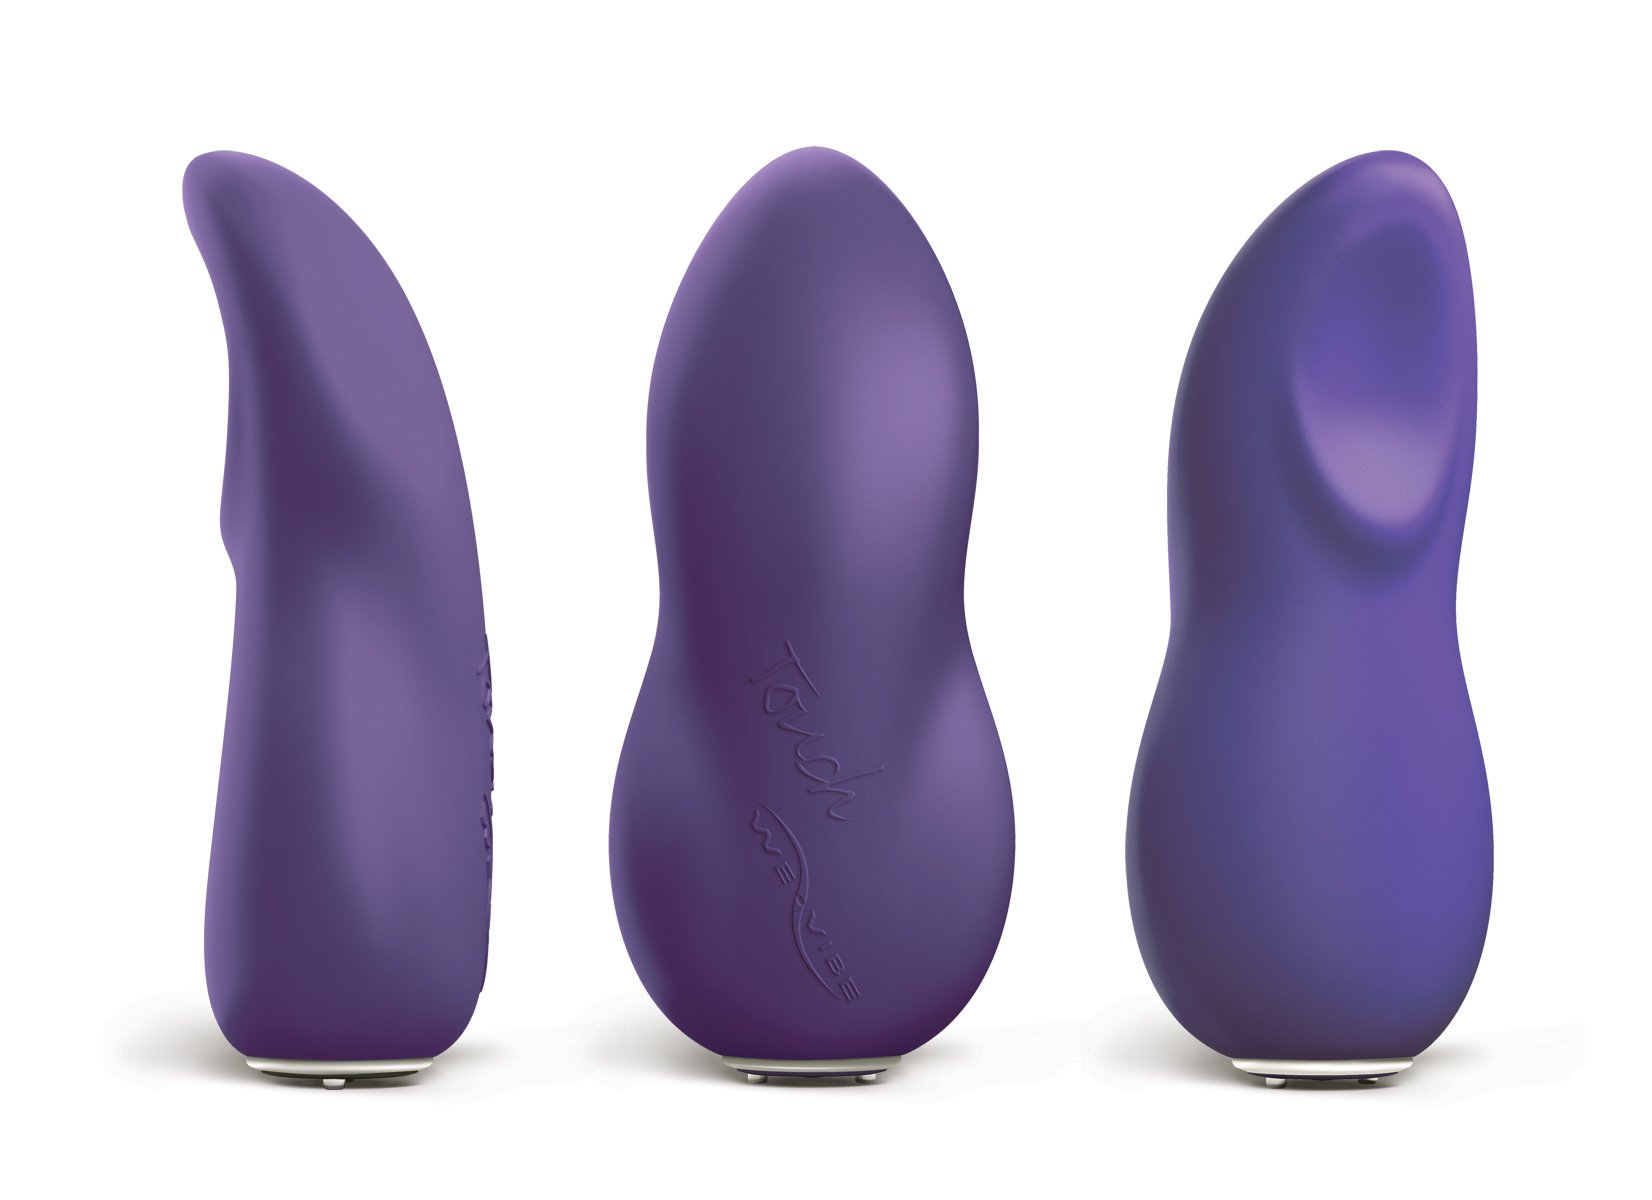 Touch by We-Vibe - Sculpted Clitoral Vibe by We-Vibe (Image #5)